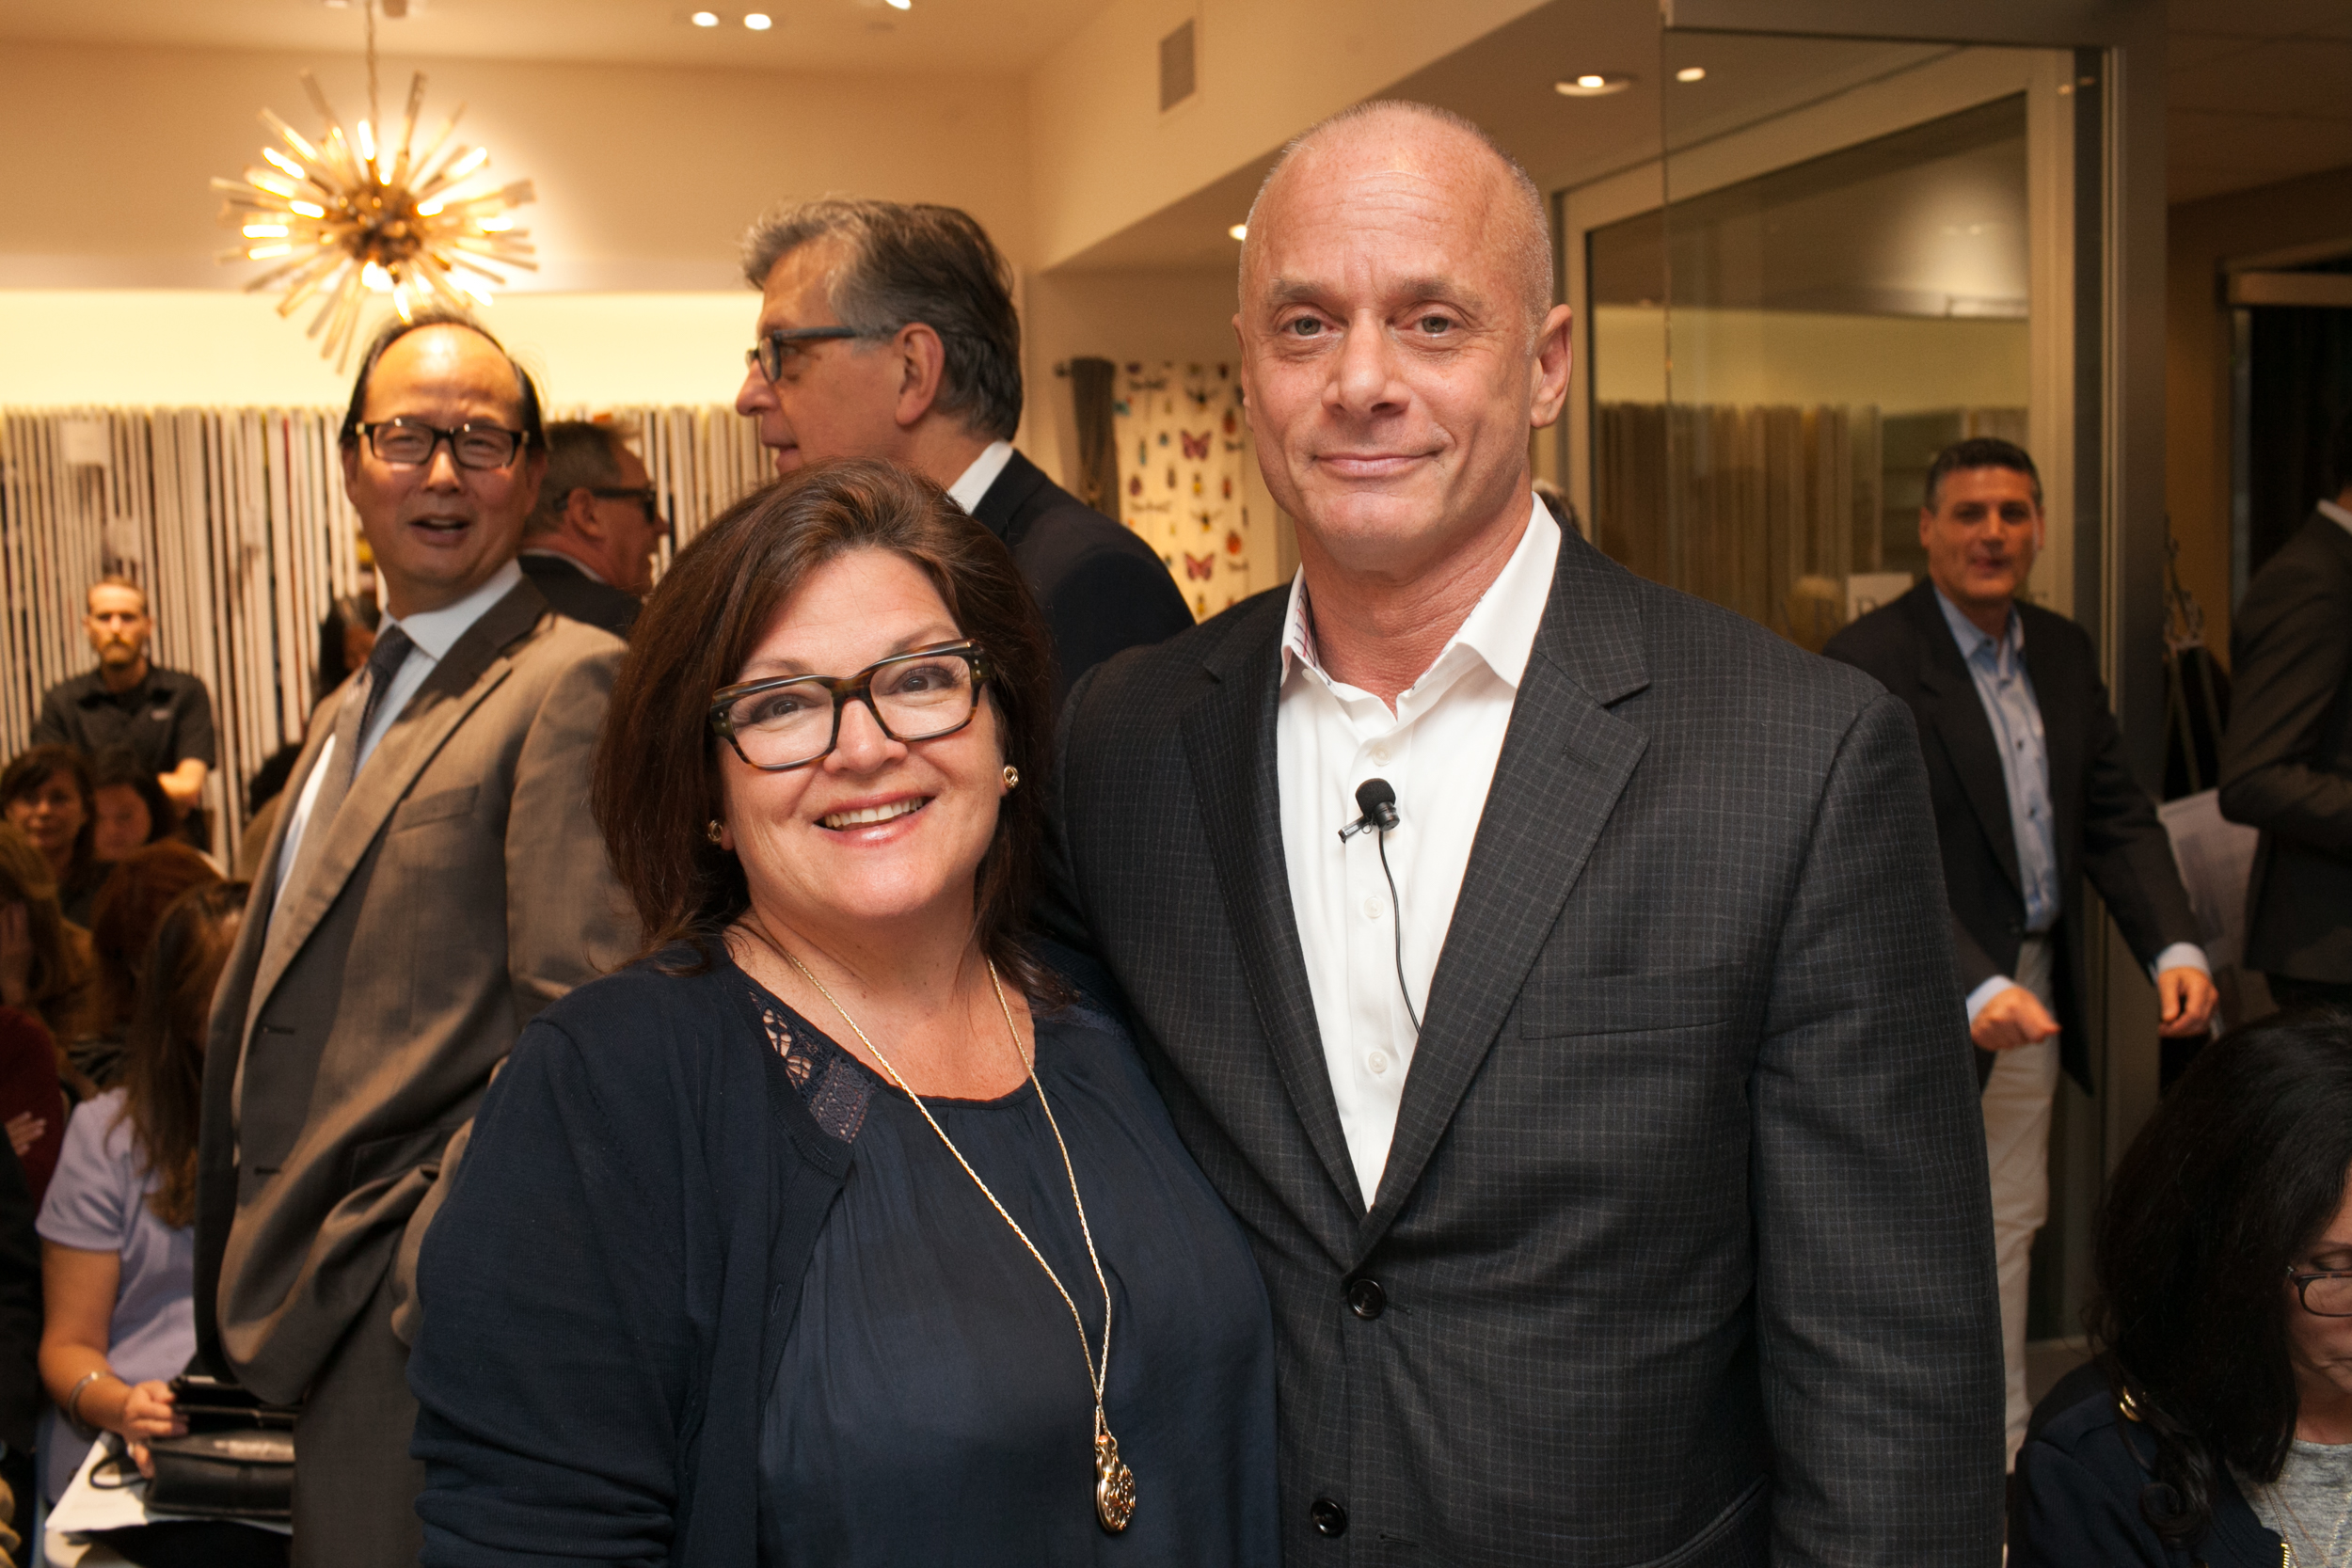 Melissa Mittag and Carl Dellatore at the Elle Decor keynote